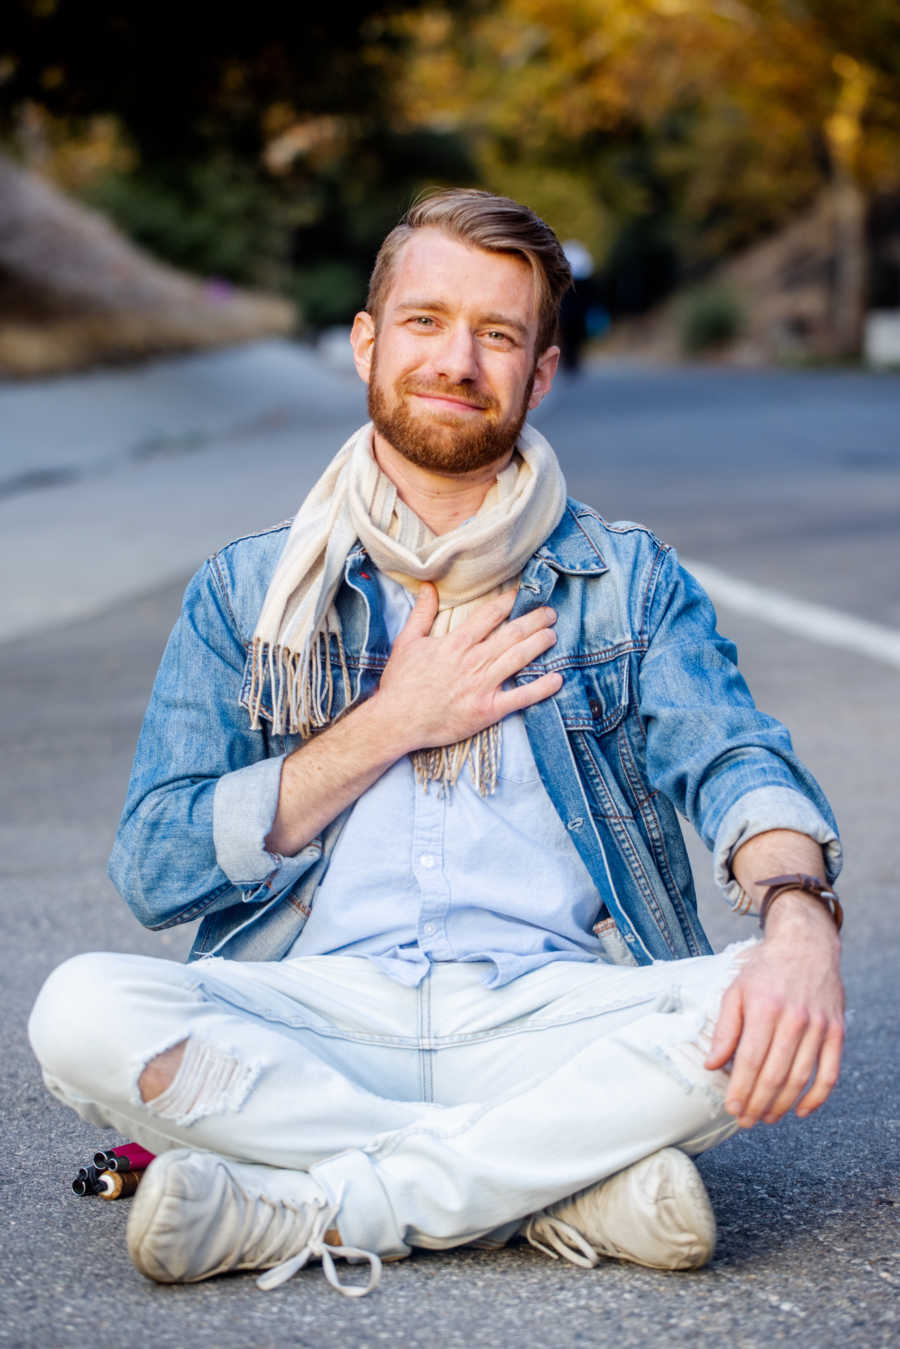 Man sitting cross-legged in the road with hand on heart smiling